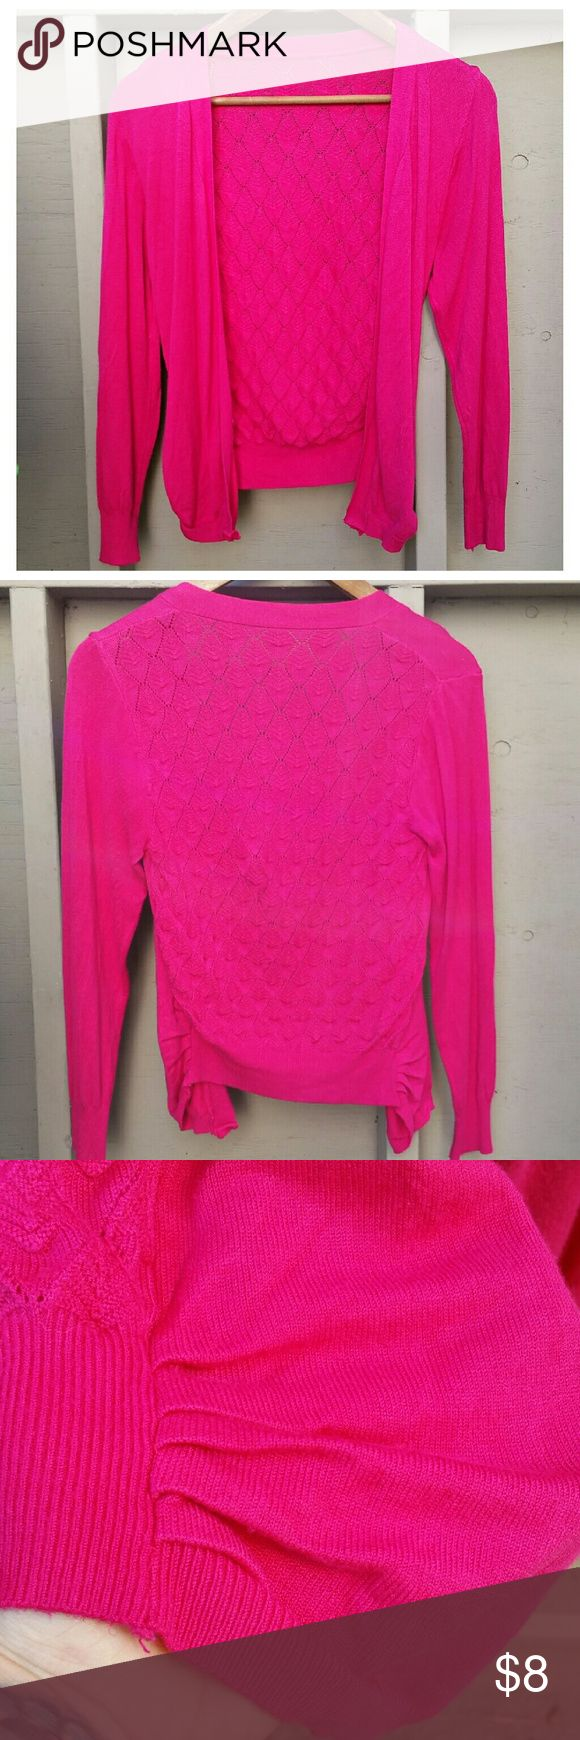 Ruched Sides Pink Cami Long Sleeve Pink Cami Only worn a couple times.  Ruched sides with lattice pattern on back <3 Perfect condition  Boutique, no specific brand Tops Camisoles